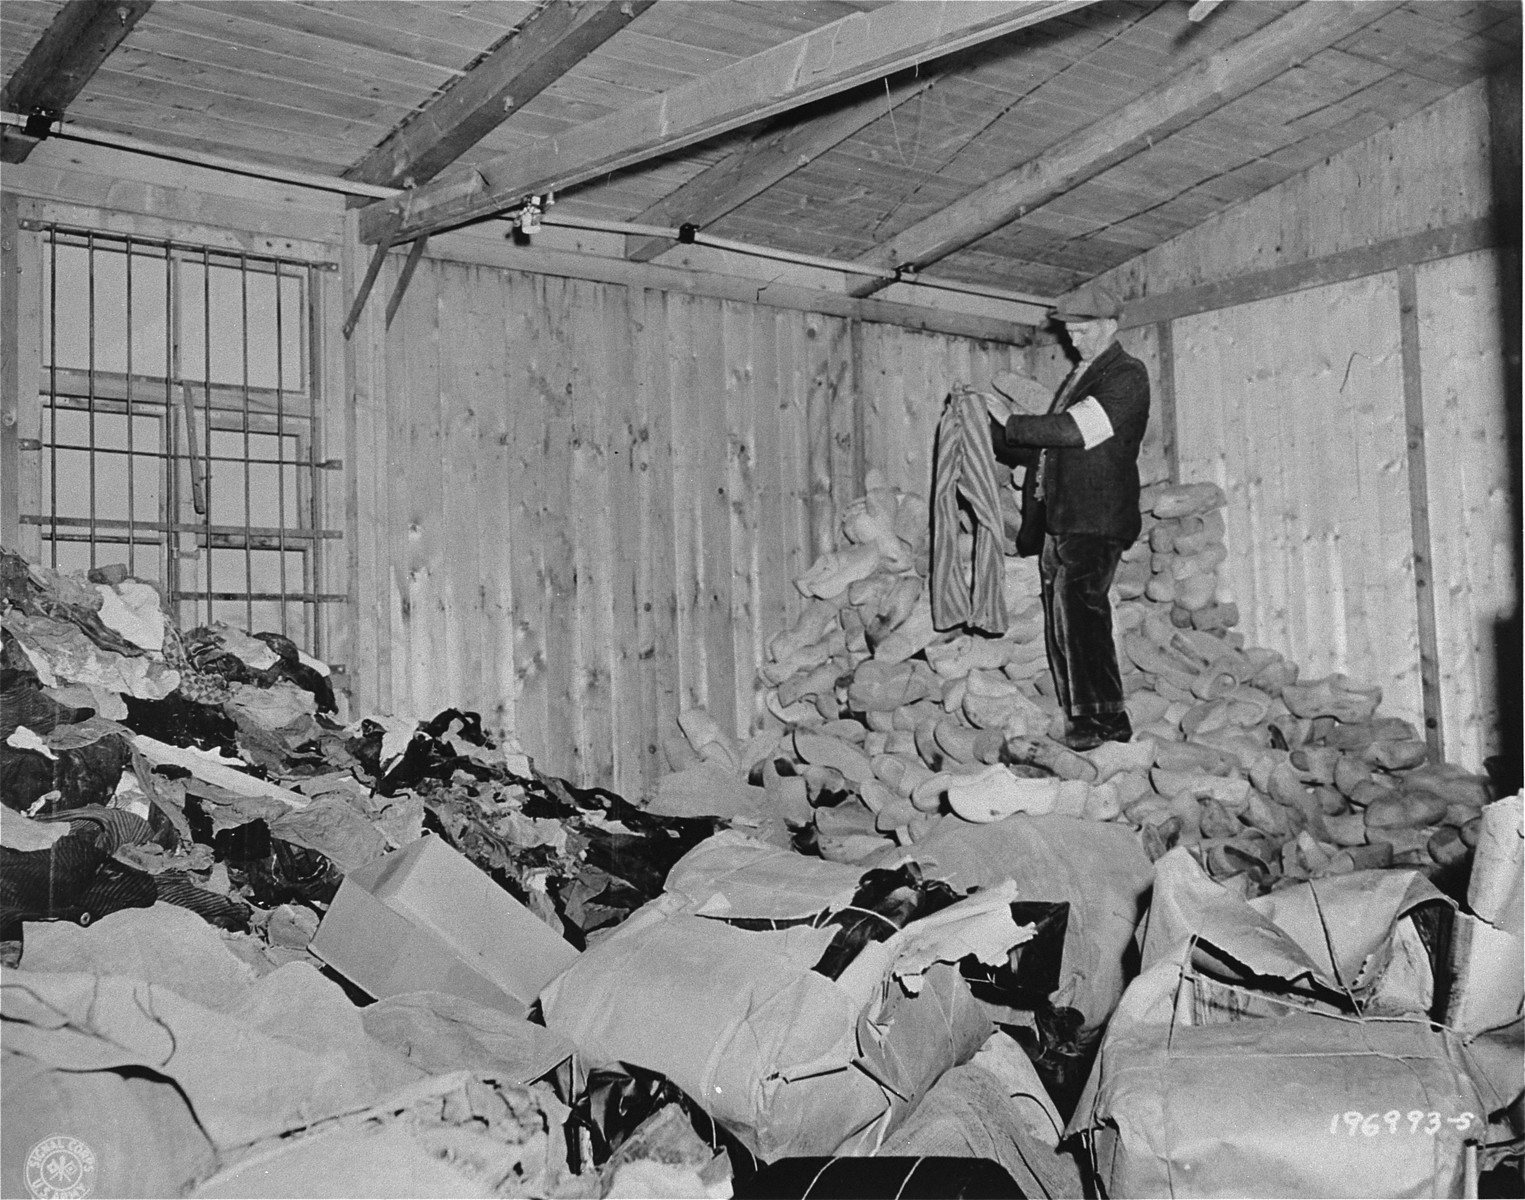 A member of the French resistance sorts through a warehouse filled with discarded prisoners' clothing in the Natzweiler-Struthof concentration camp.